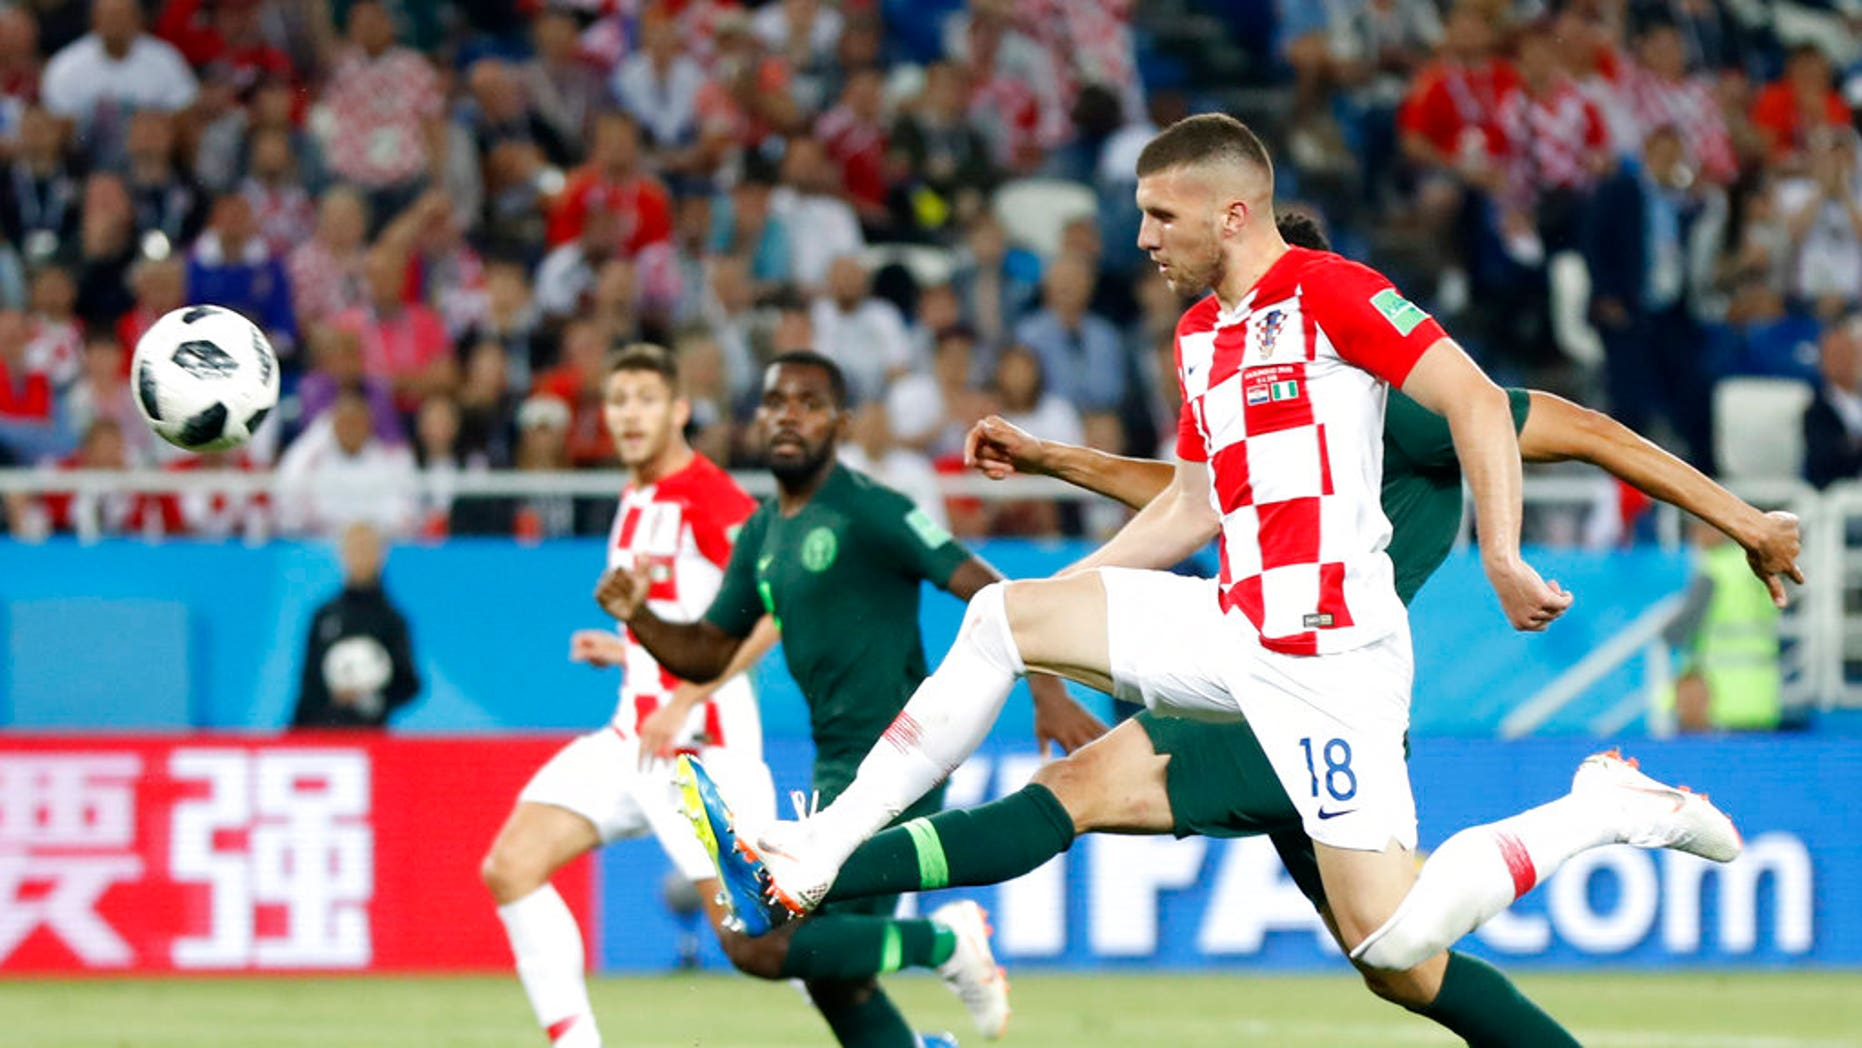 Croatia's Ante Rebić kicks the ball during the team's opening World Cup match against Nigeria. Nikola Kalinić (not pictured) was sent home for refusing to participate in the Saturday match.